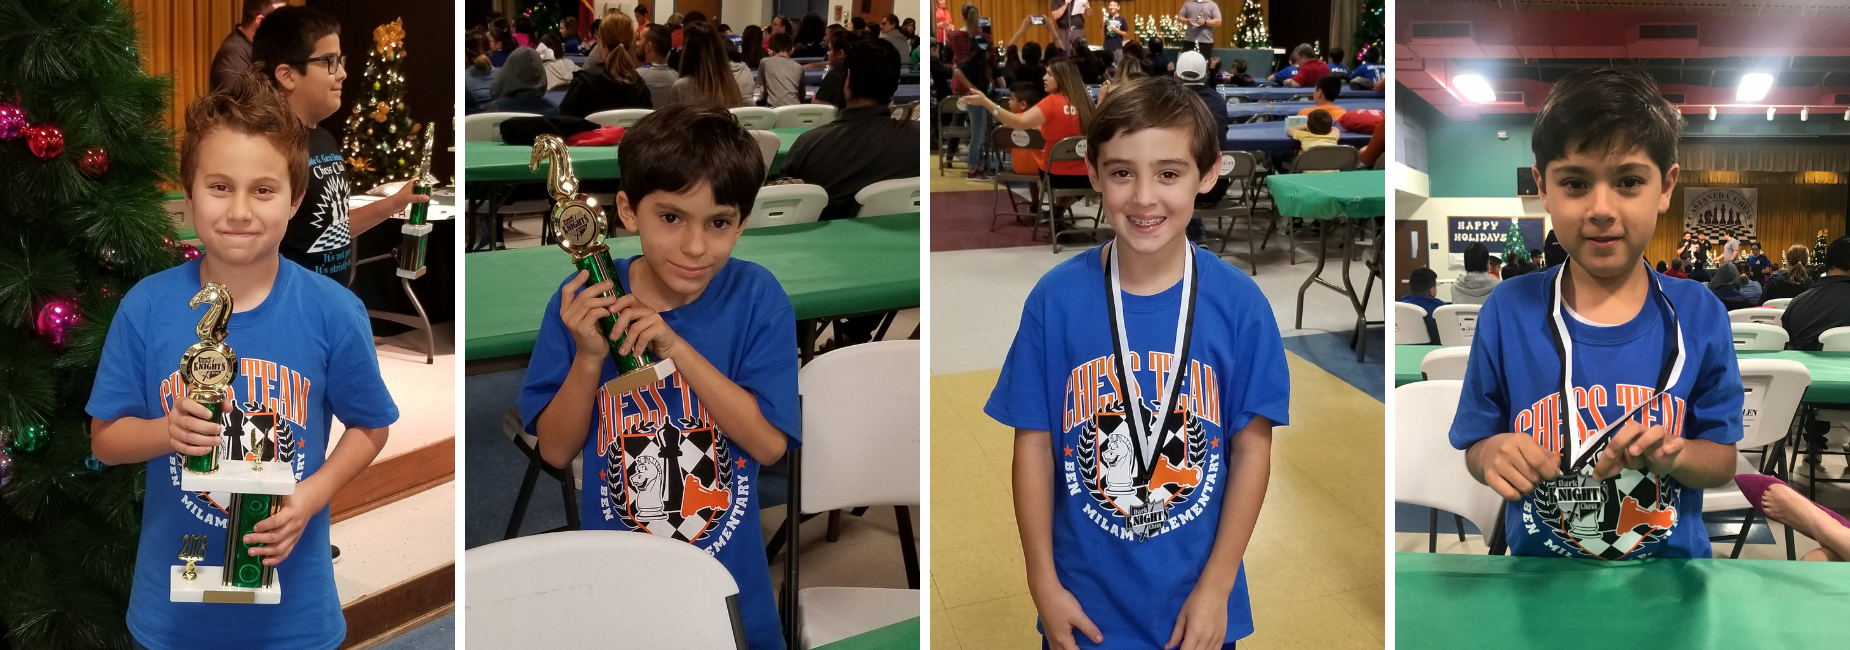 Milam Trophy and Medal Winners from Chess Tournament